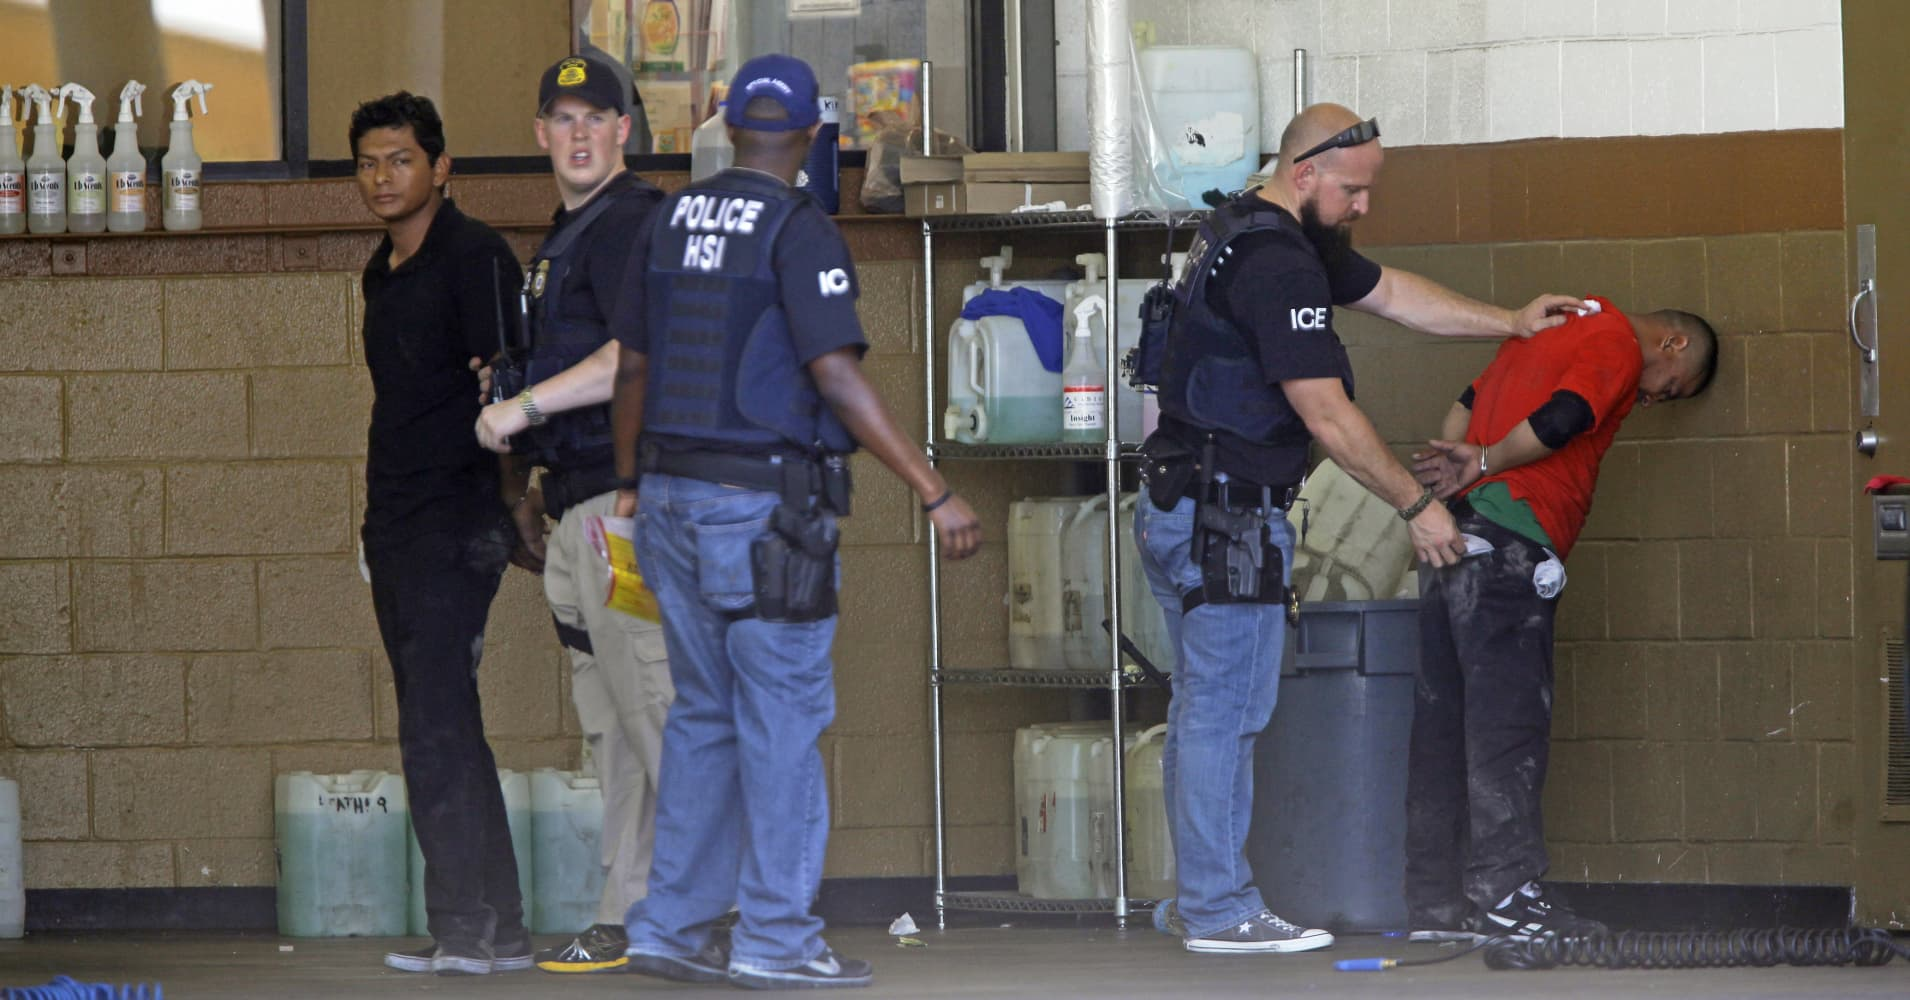 ICE agents detain workers at a business in Phoenix.